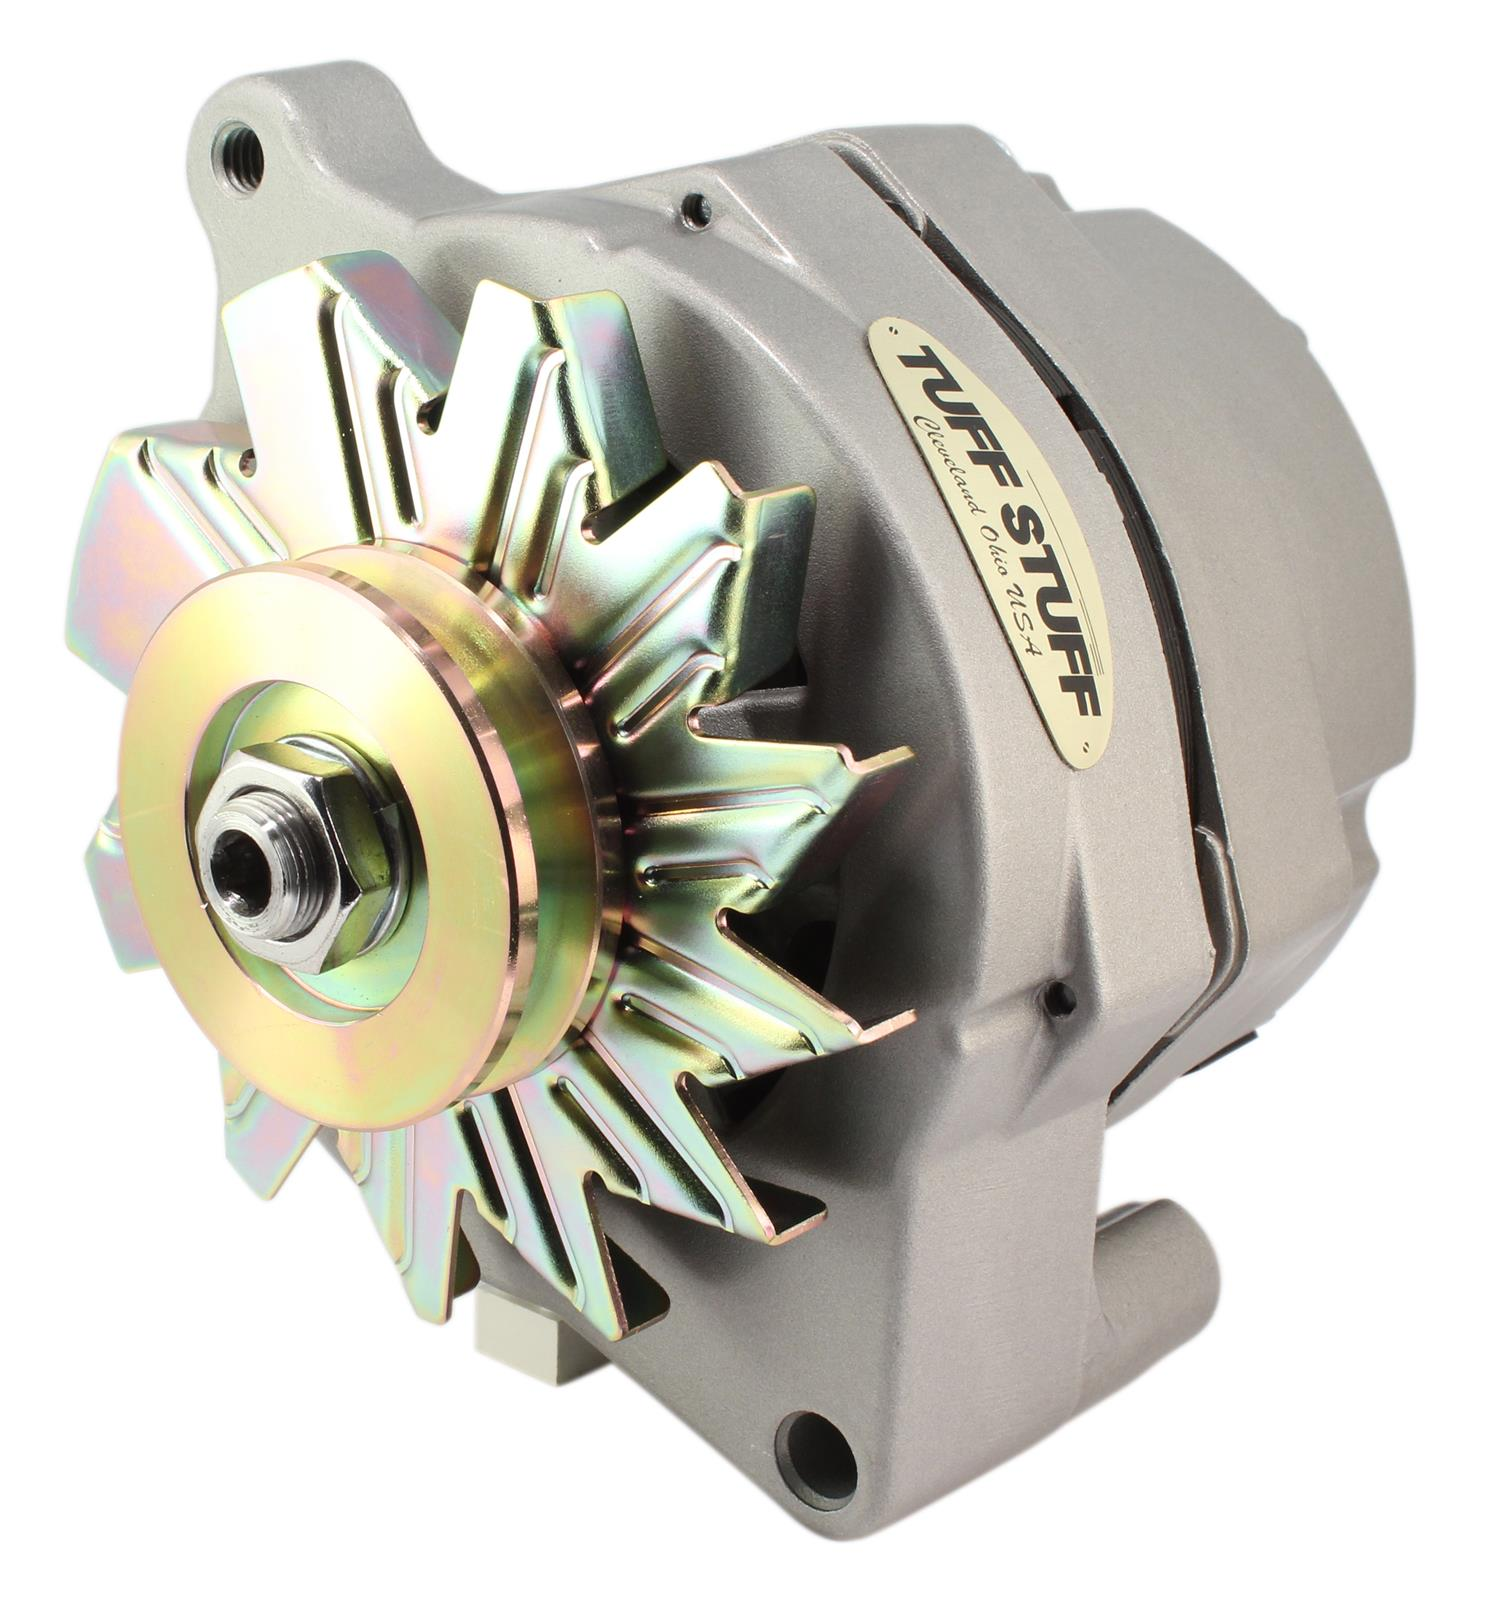 Tuff Stuff Performance High-Amp Output Factory Cast-Plus Alternators 7068 -  Free Shipping on Orders Over $49 at Summit Racing